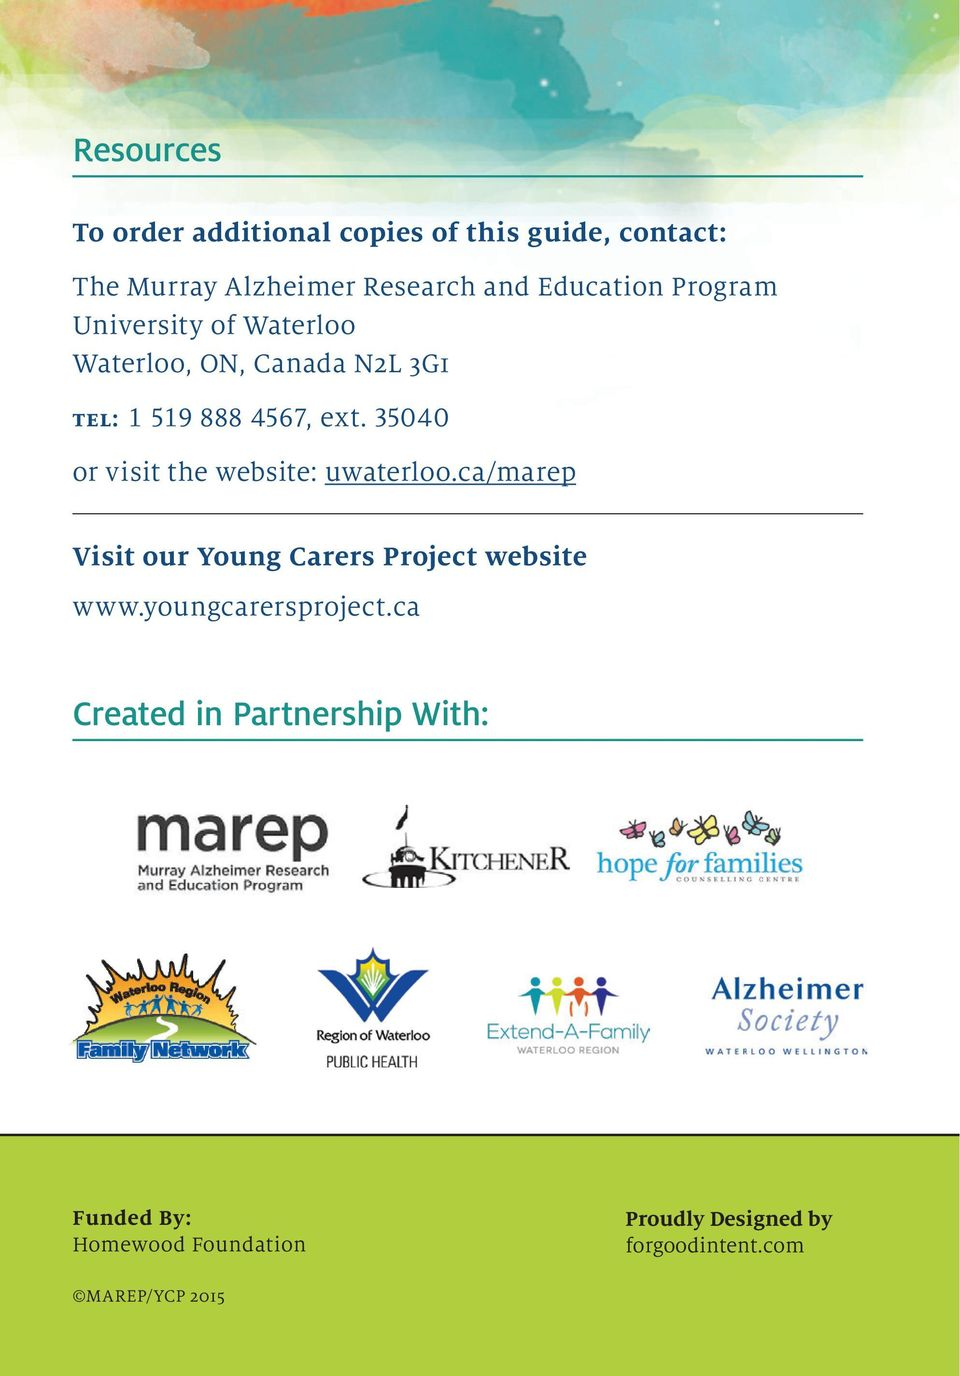 35040 or visit the website: uwaterloo.ca/marep Visit our Young Carers Project website www.